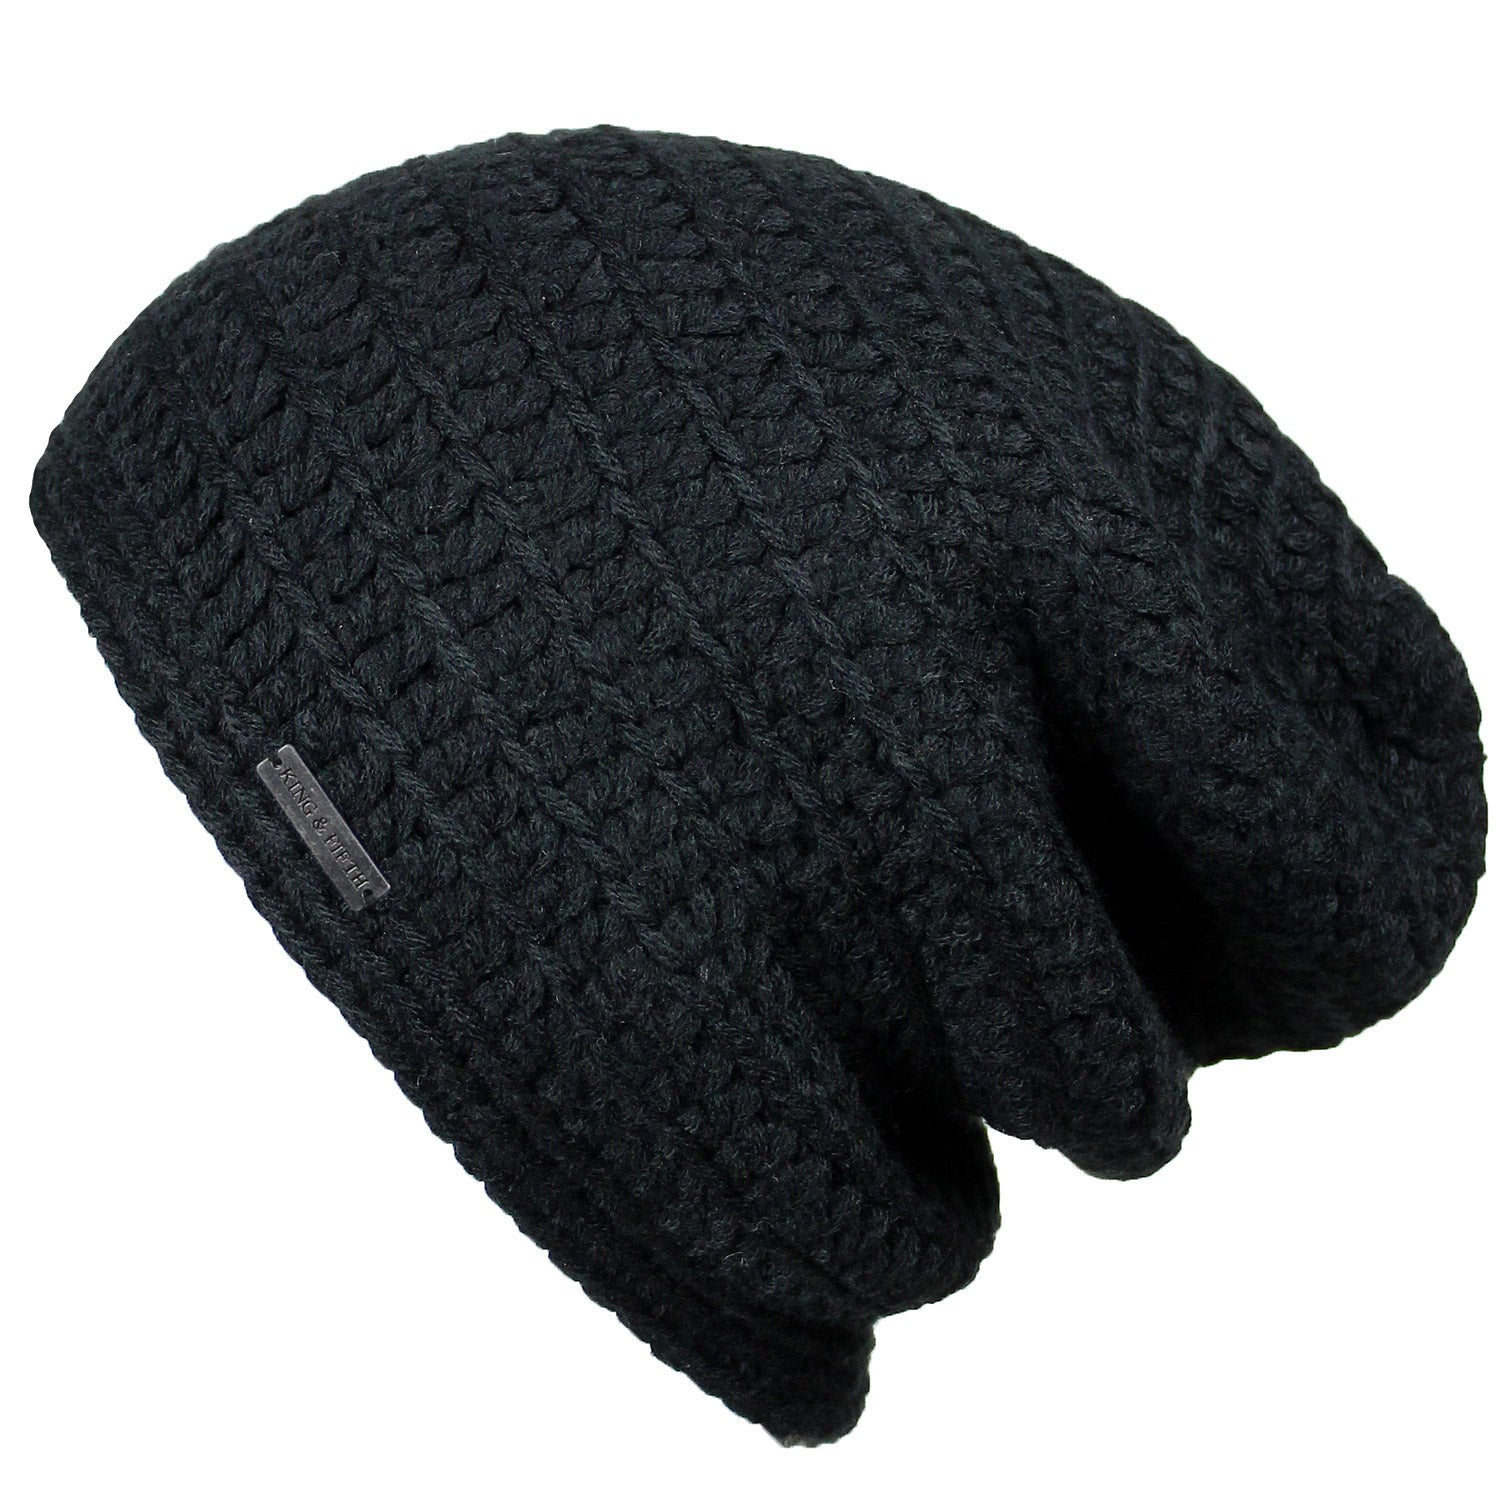 9f56eb716386c7 Mens Slouchy Beanie - The Beeskie - Black - King and Fifth Supply Co.